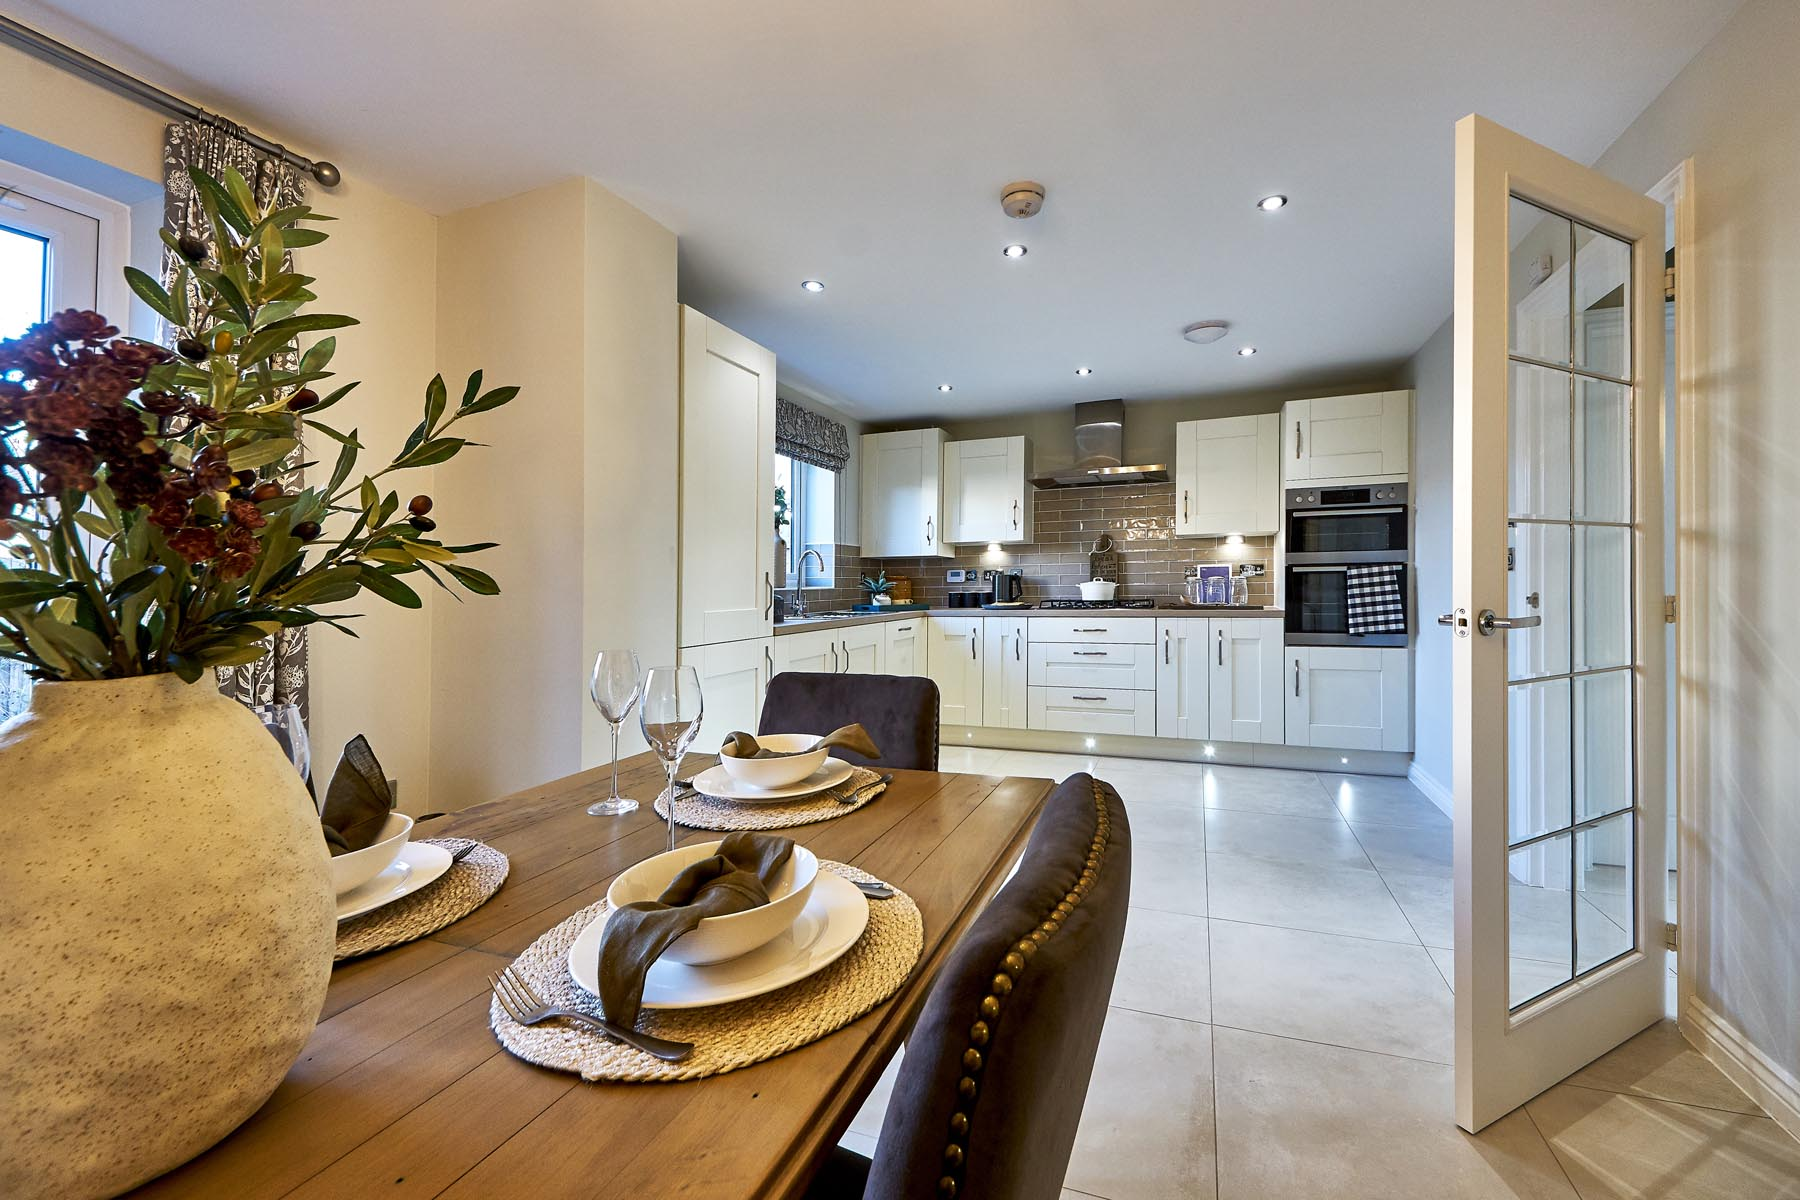 Wheatfield Manor - Heydon - Dining Kitchen